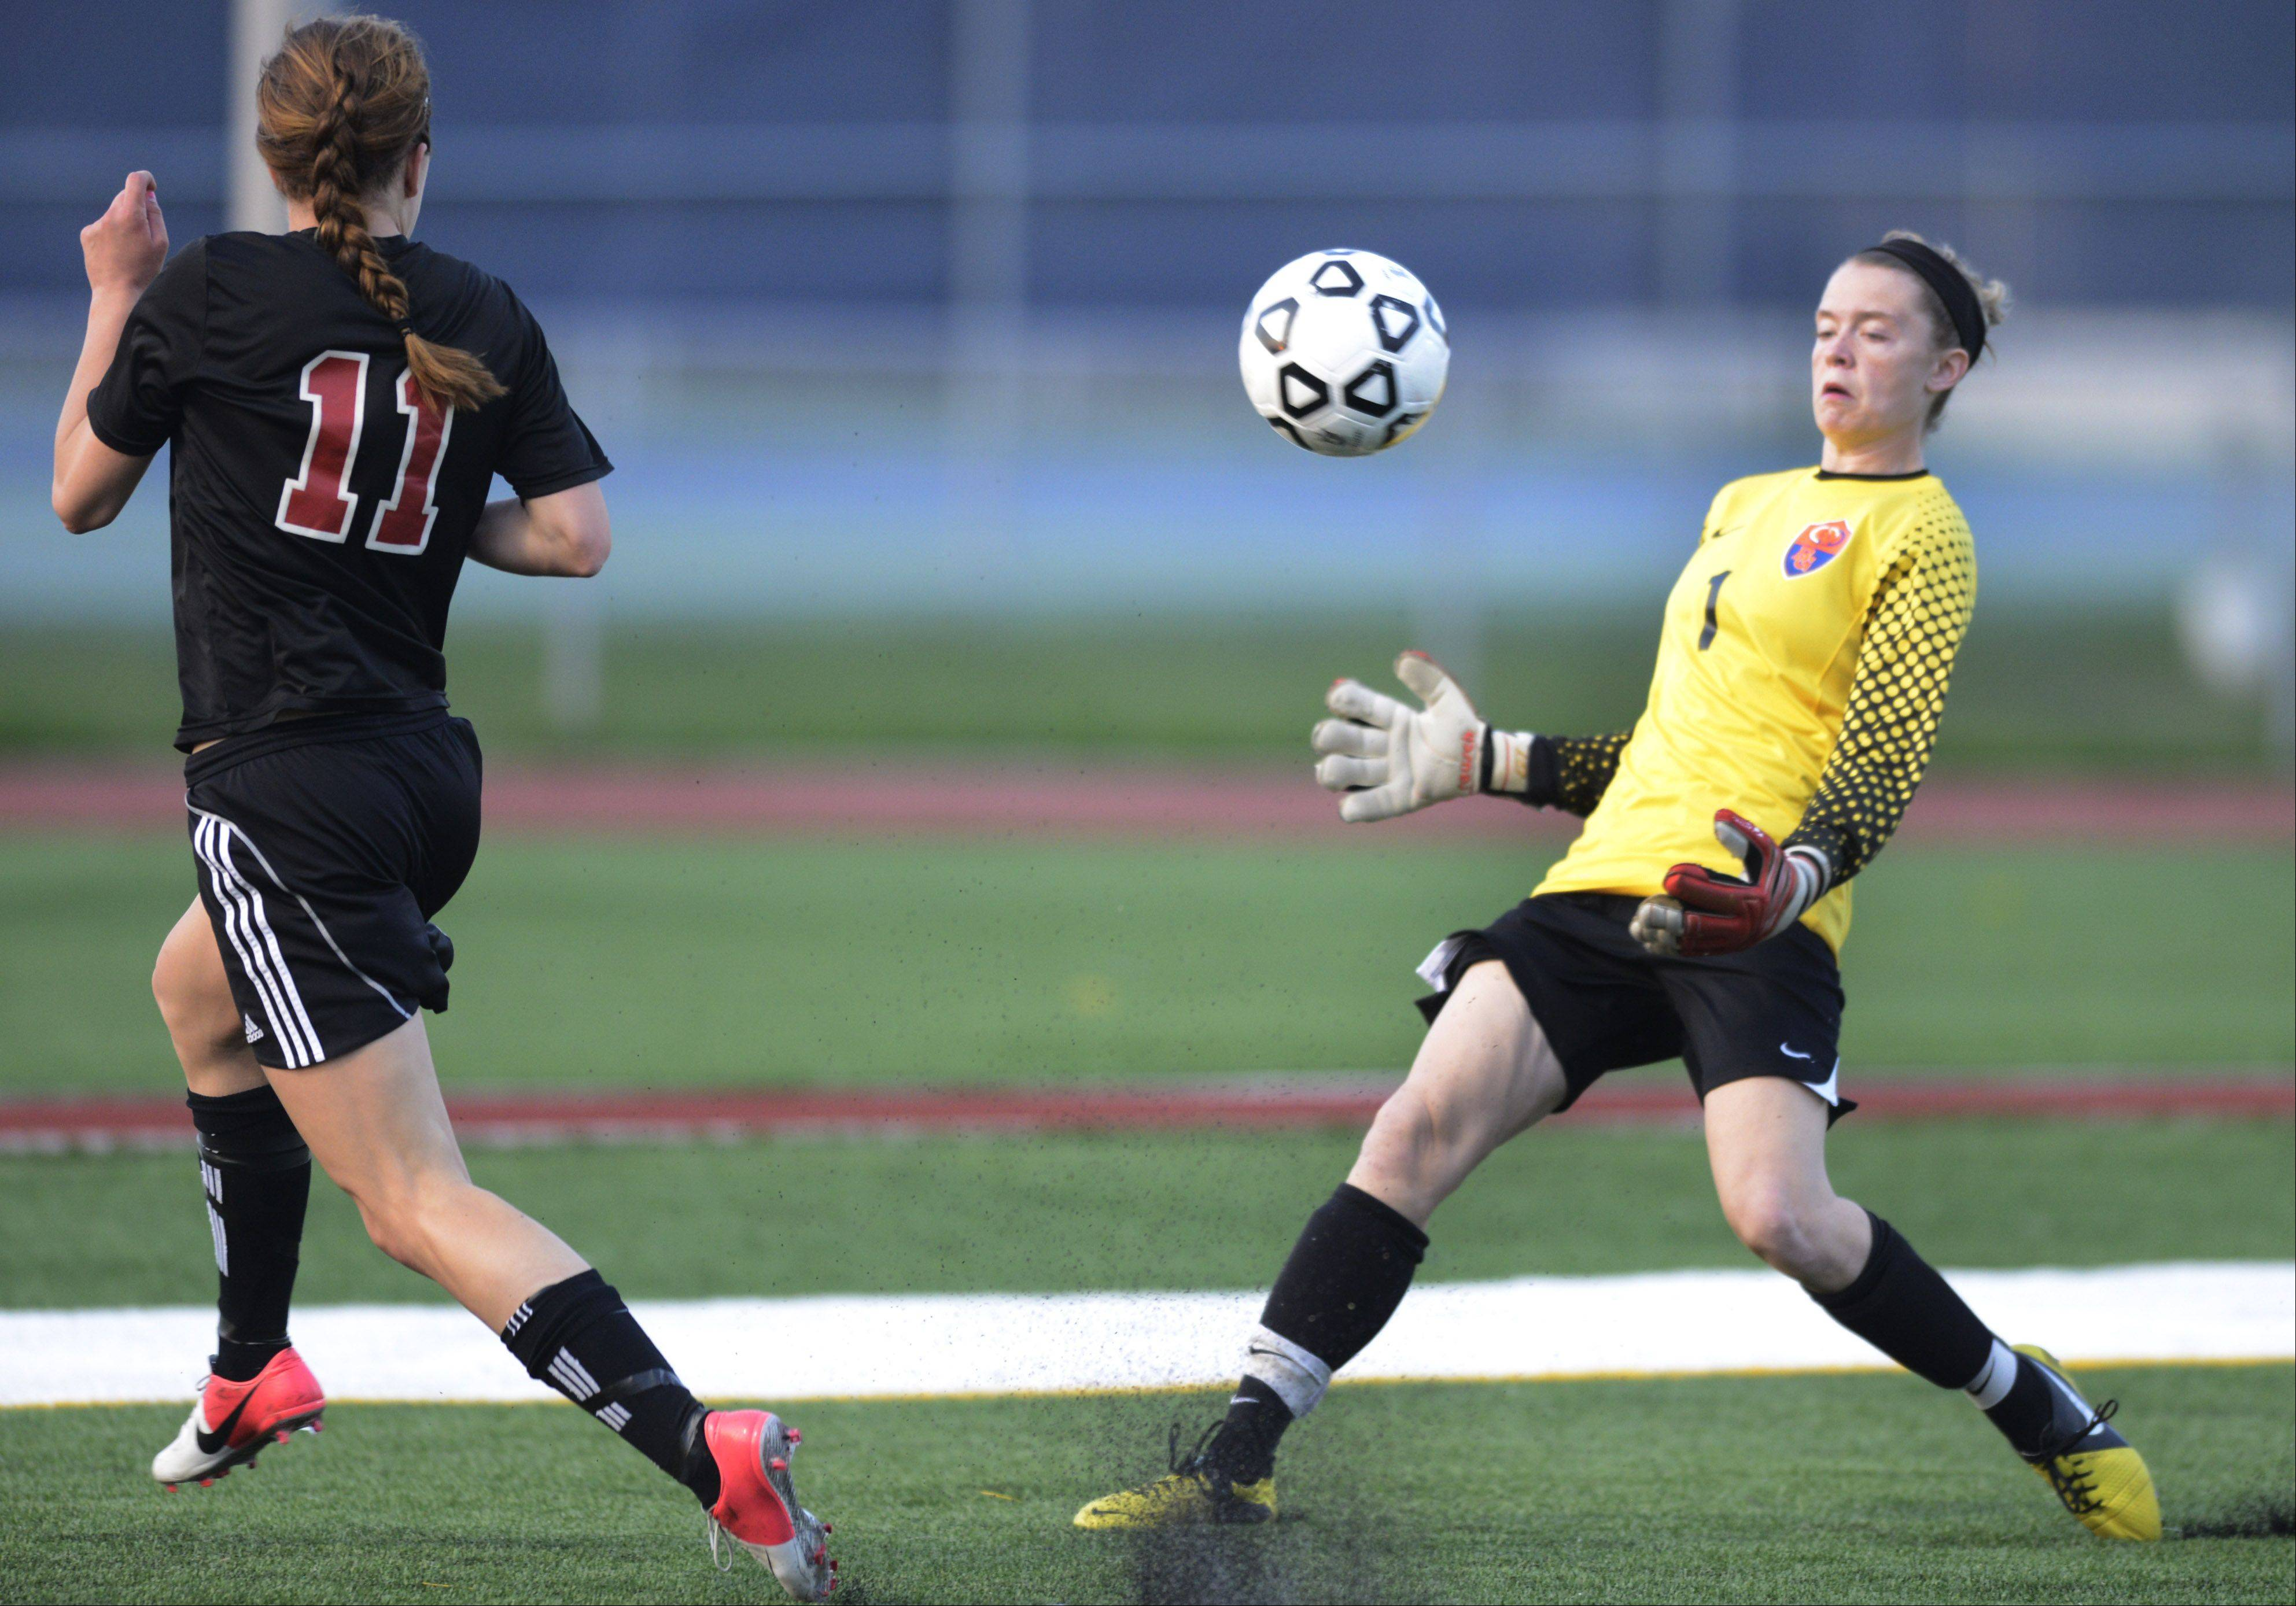 Buffalo Grove goal keeper Sarah O'Connor stops a shot attempt by Barrington's Jenna Szczesny during Wednesday's Mid-Suburban League championship game at Buffalo Grove.